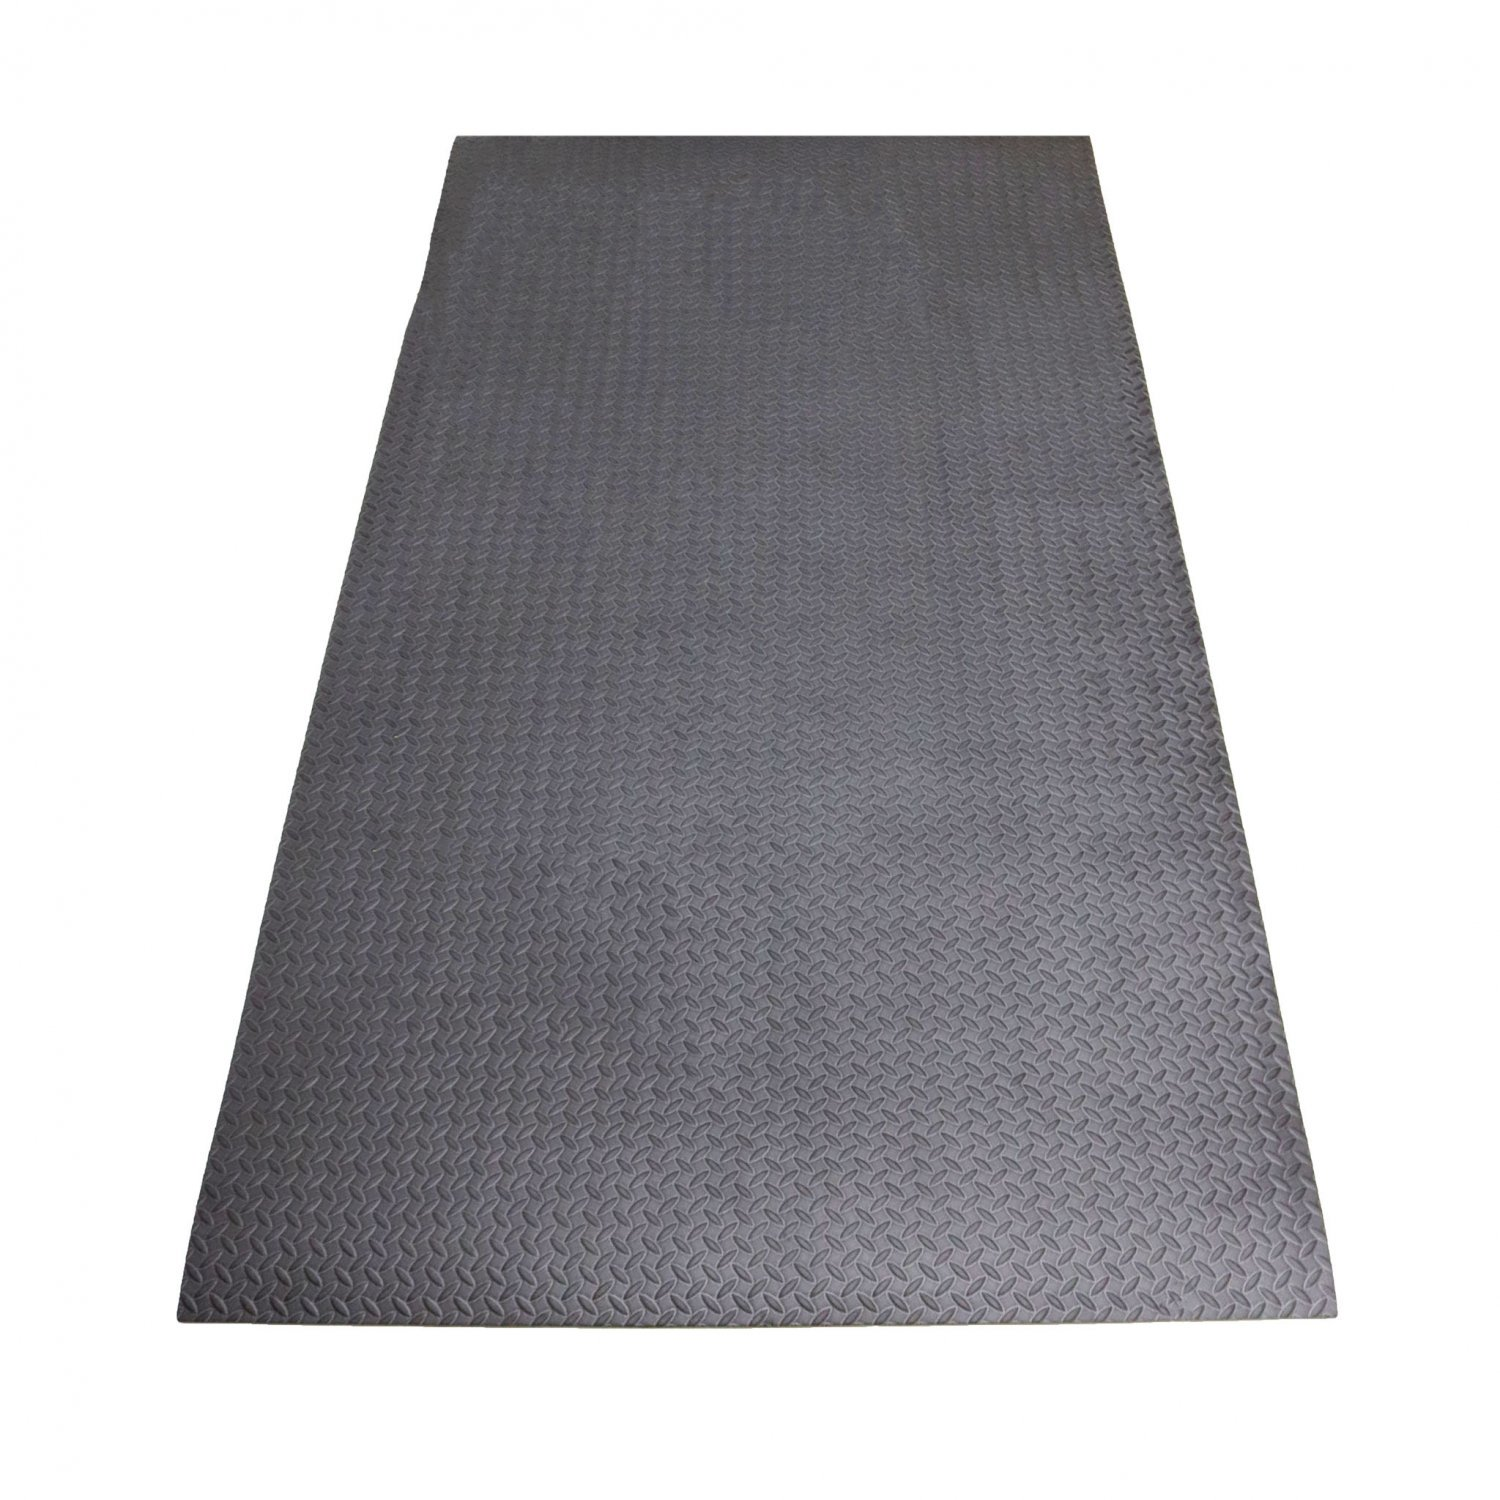 Large Multi-Purpose Safety EVA Floor Mat Play Garage Gym Matting